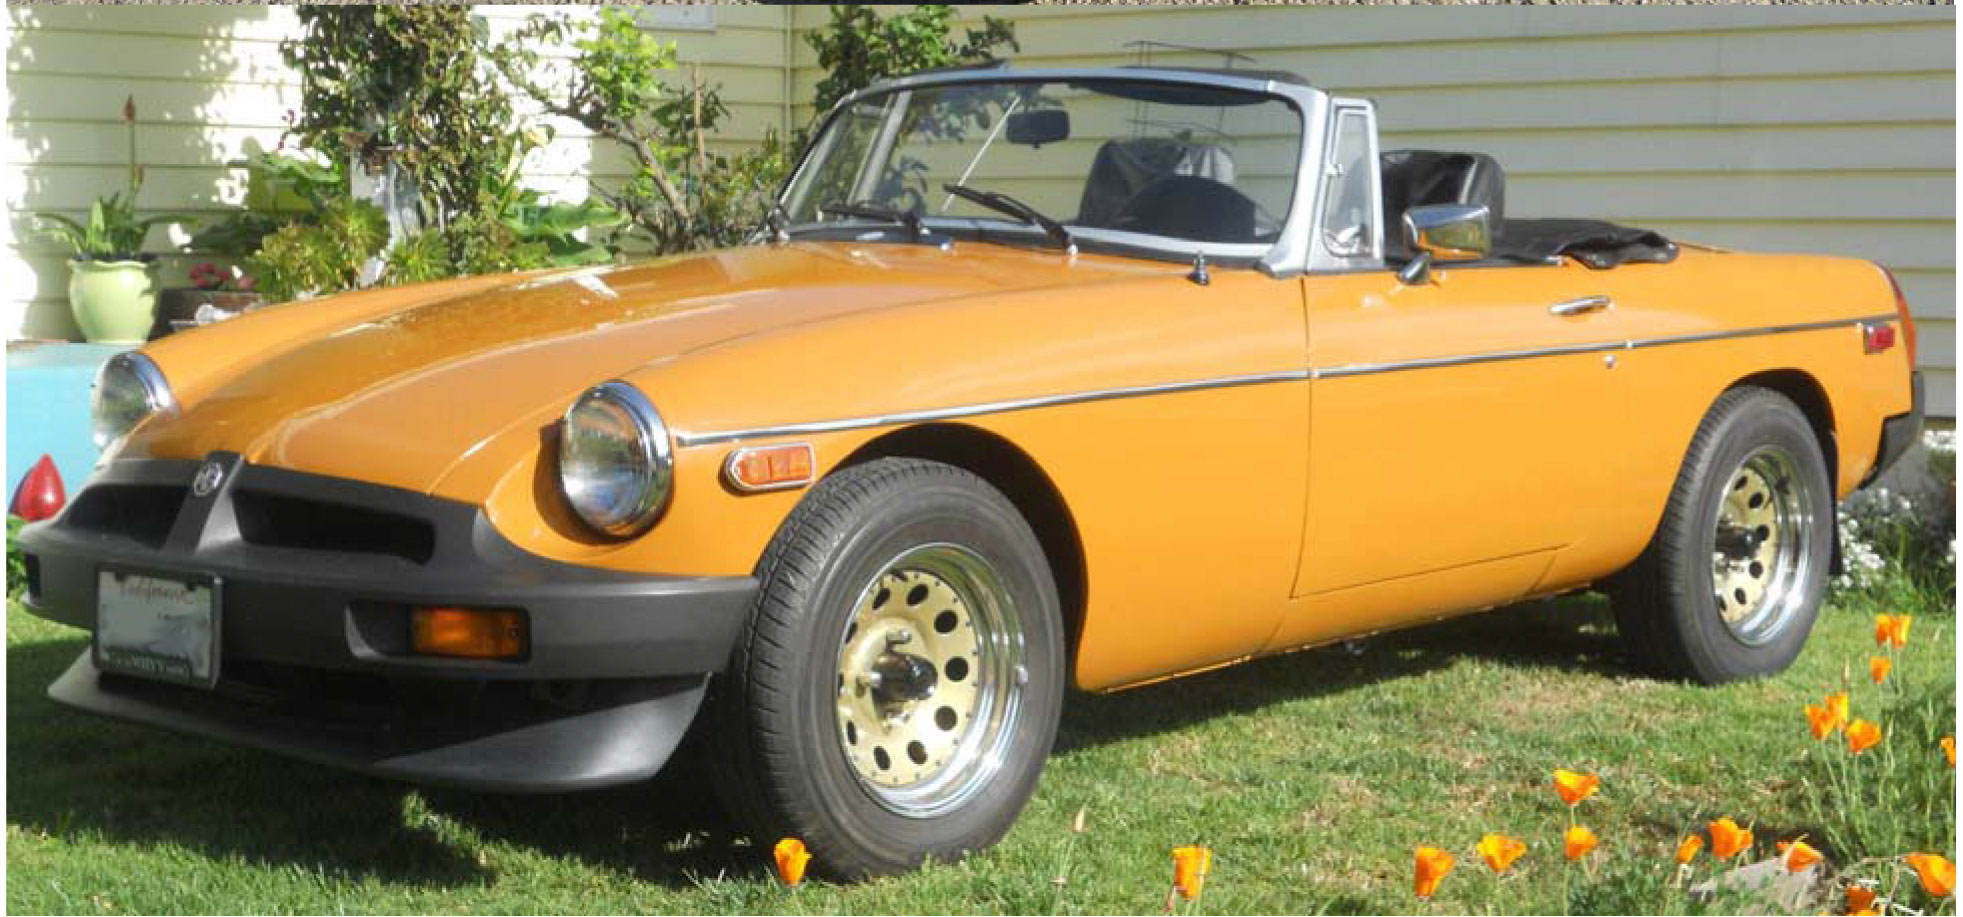 My-MGB-story-5-copy.jpg